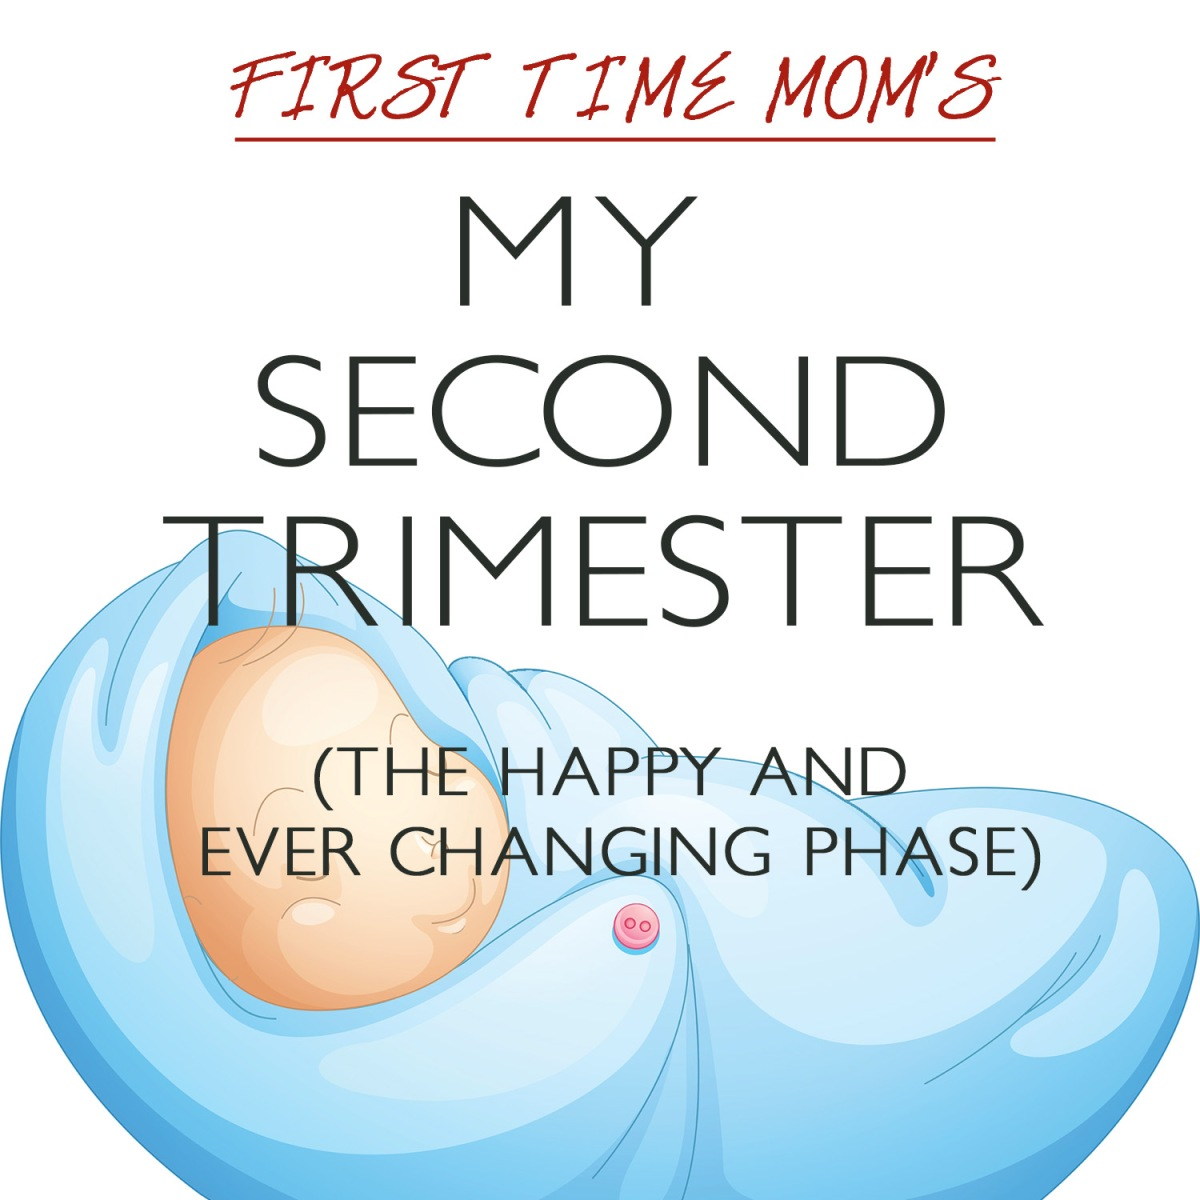 My Second Trimester Checklist